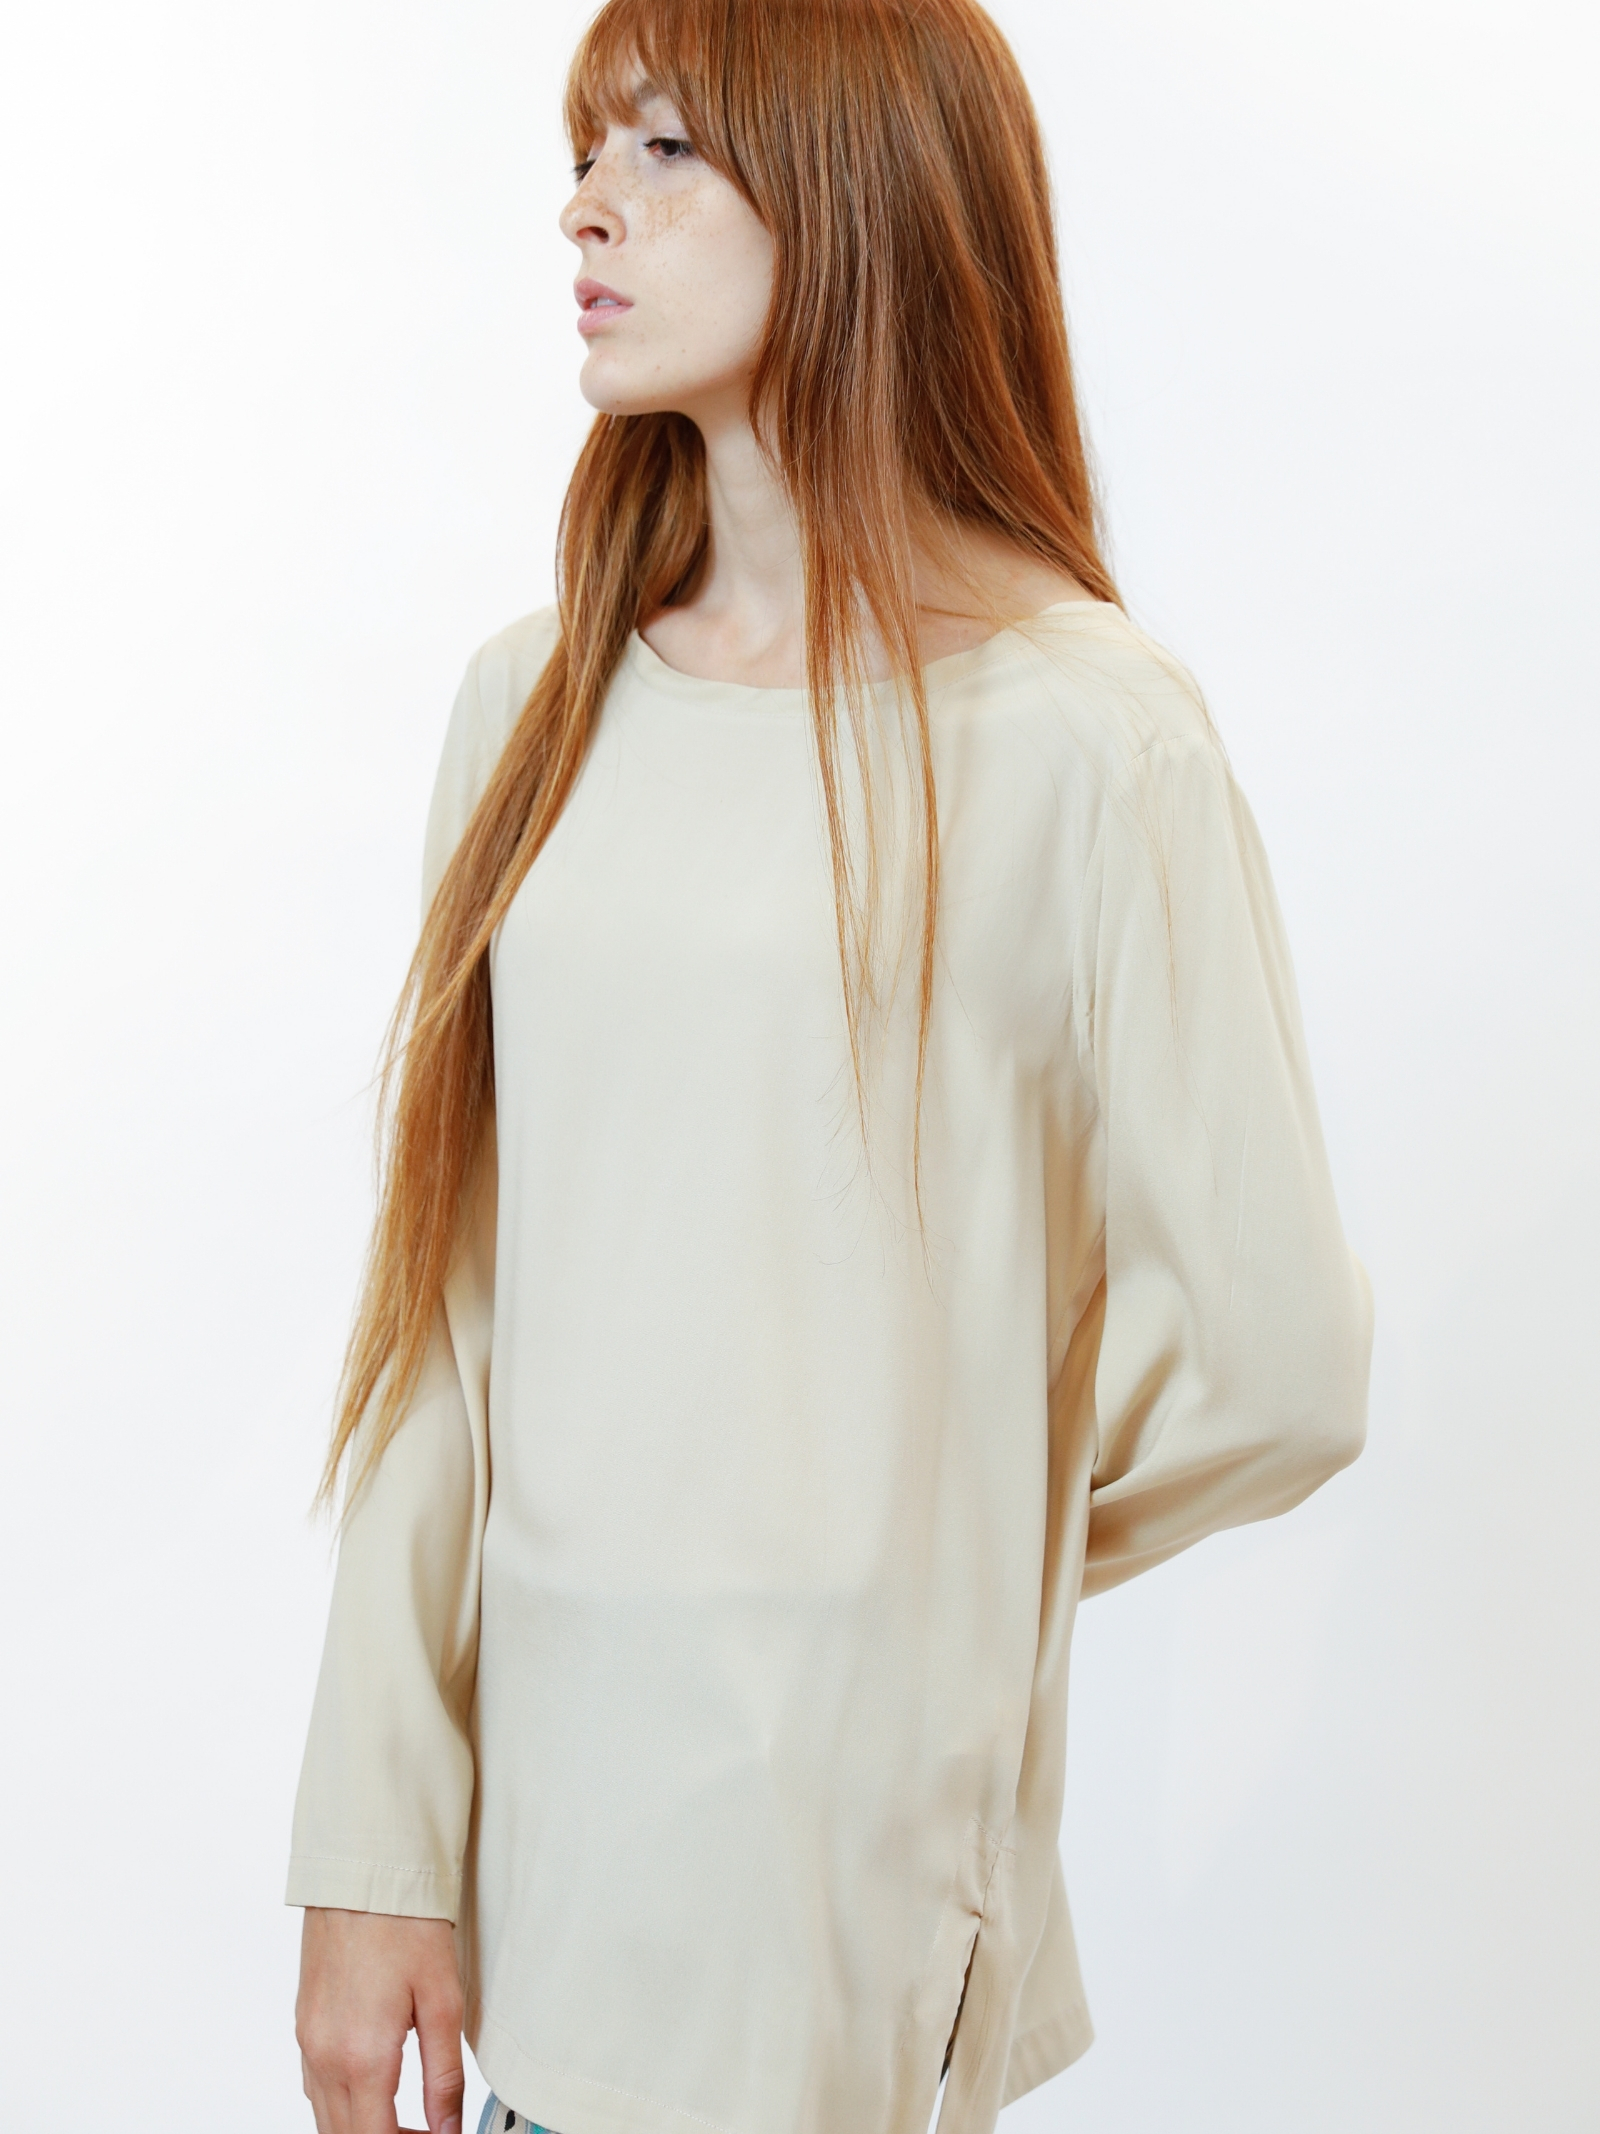 Women's Clothing Silk Satin Crew Neck Shirt in Pure Beige Silk Long Sleeves Maliparmi | Shirts and tops | JM40603102011010